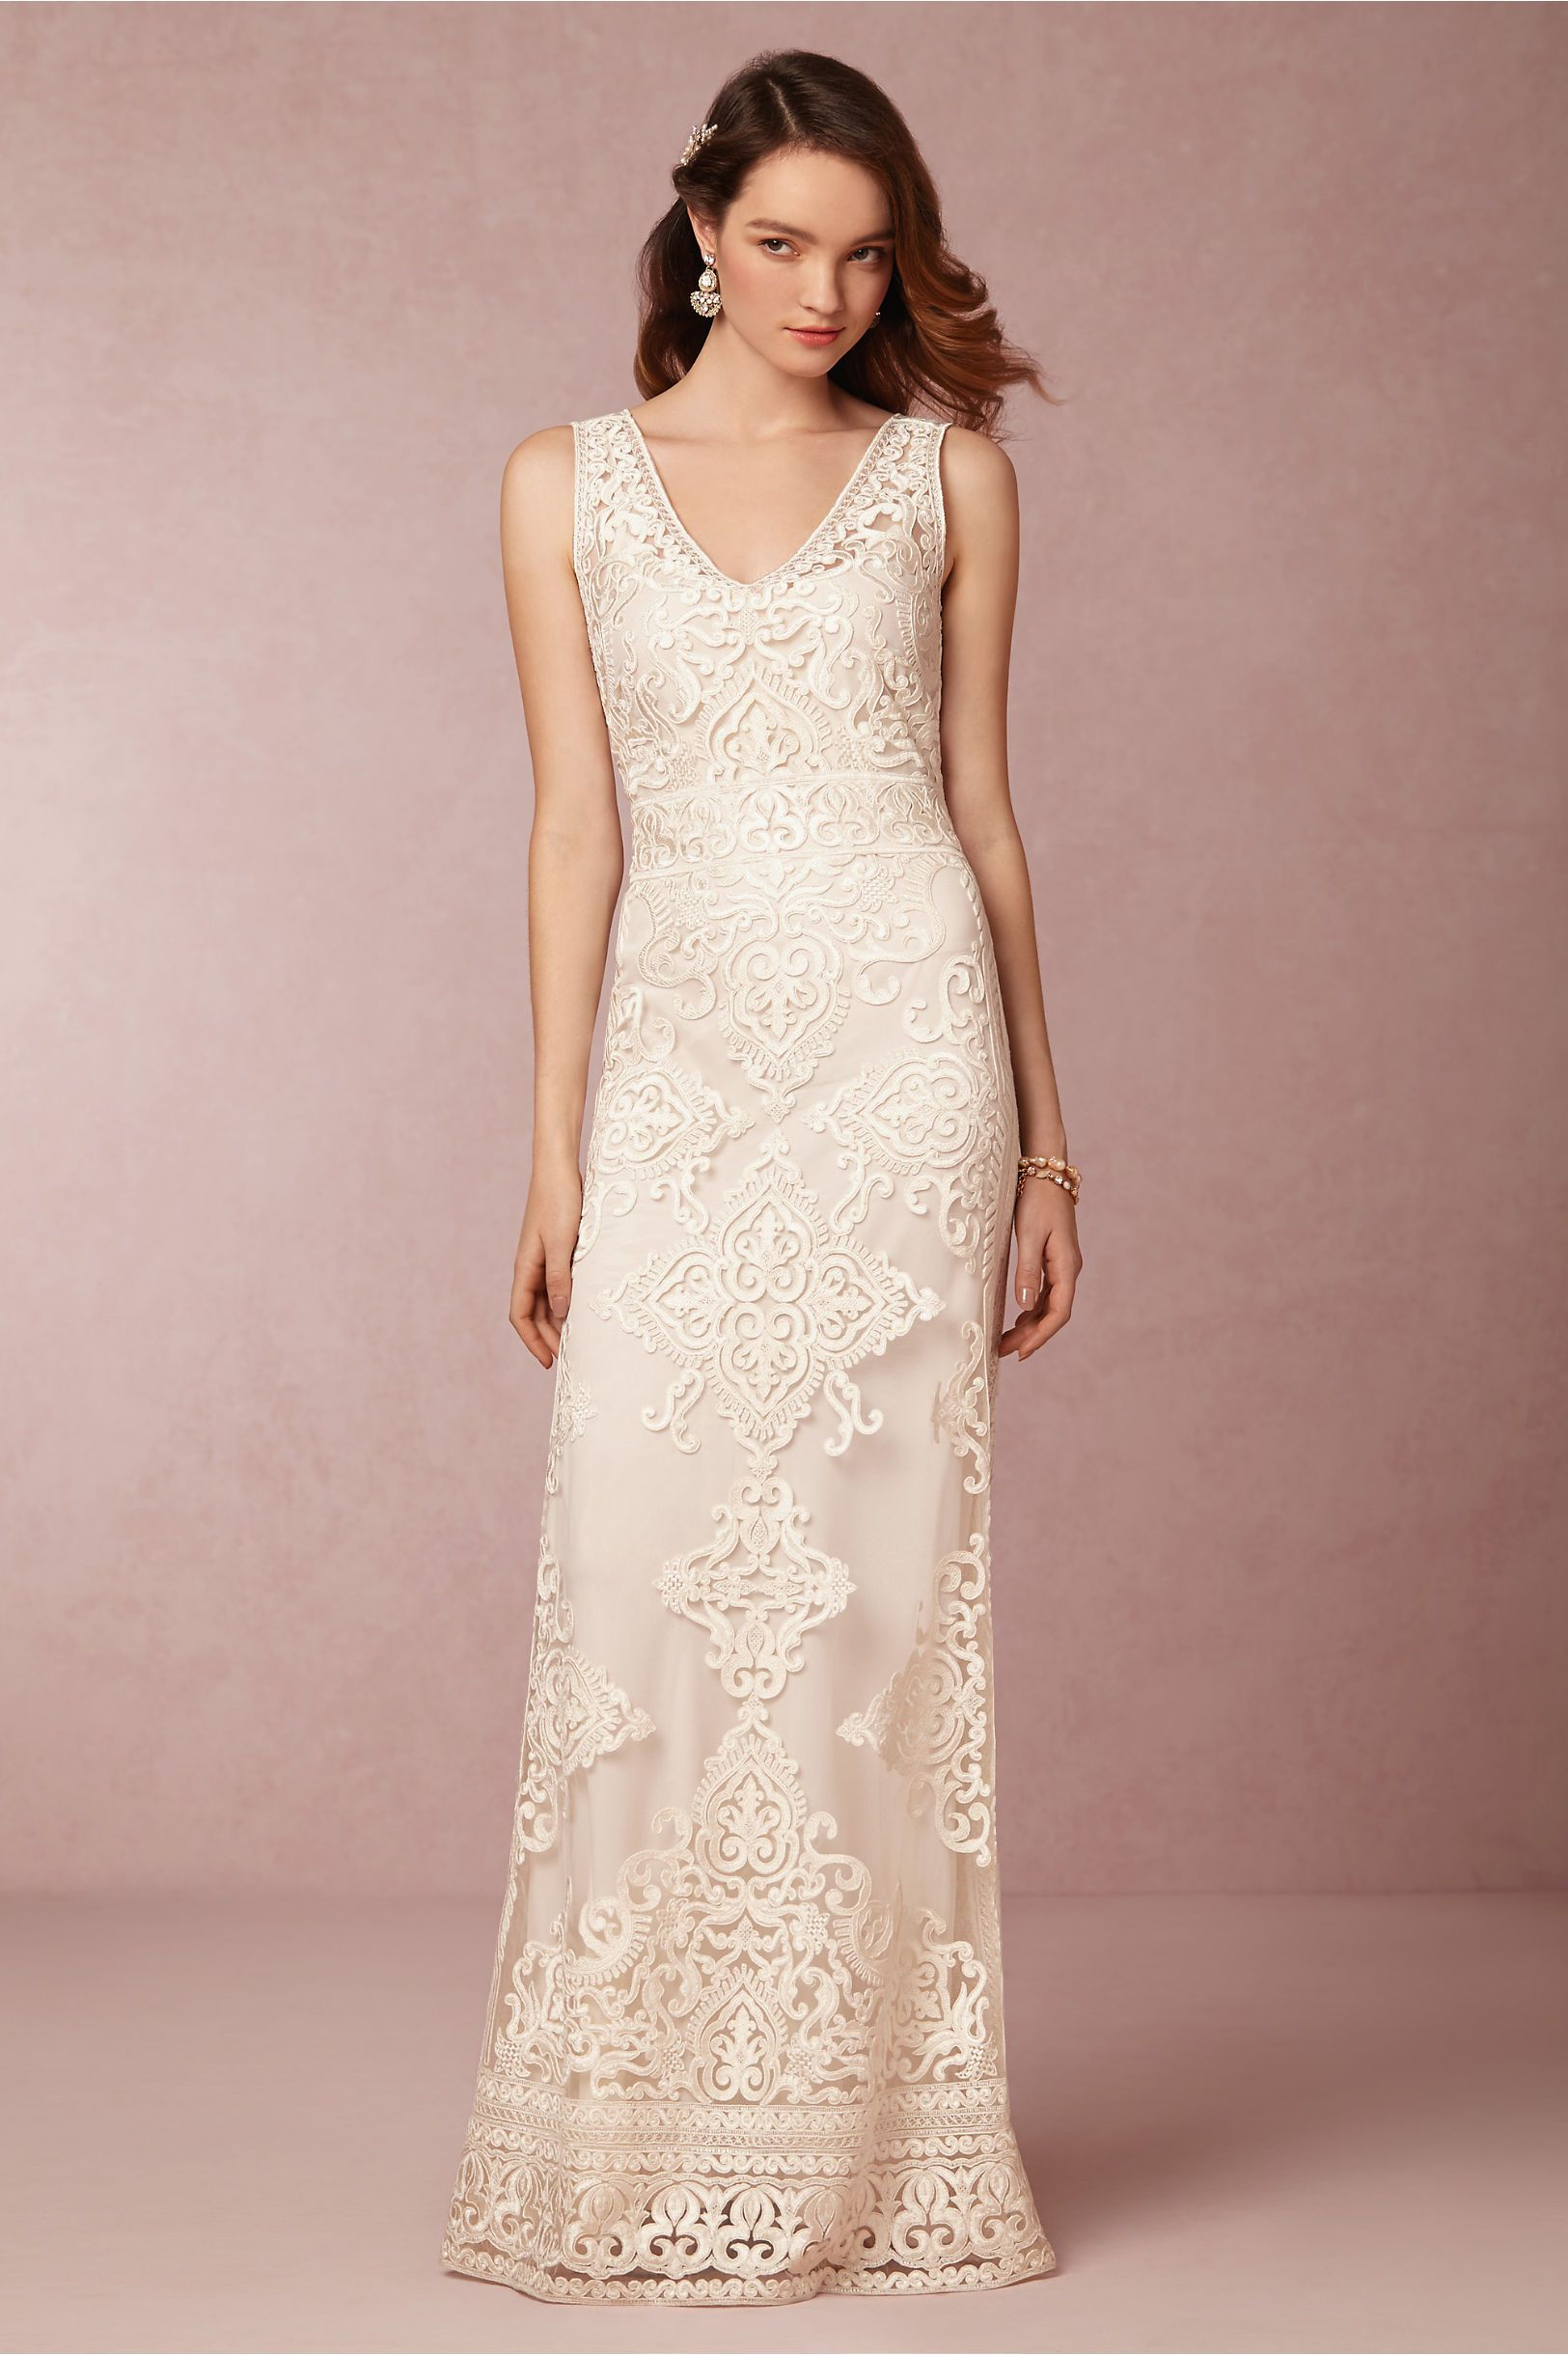 Alhambra Gown In Bride Wedding Dresses At BHLDN, Great For A Busty Figure.